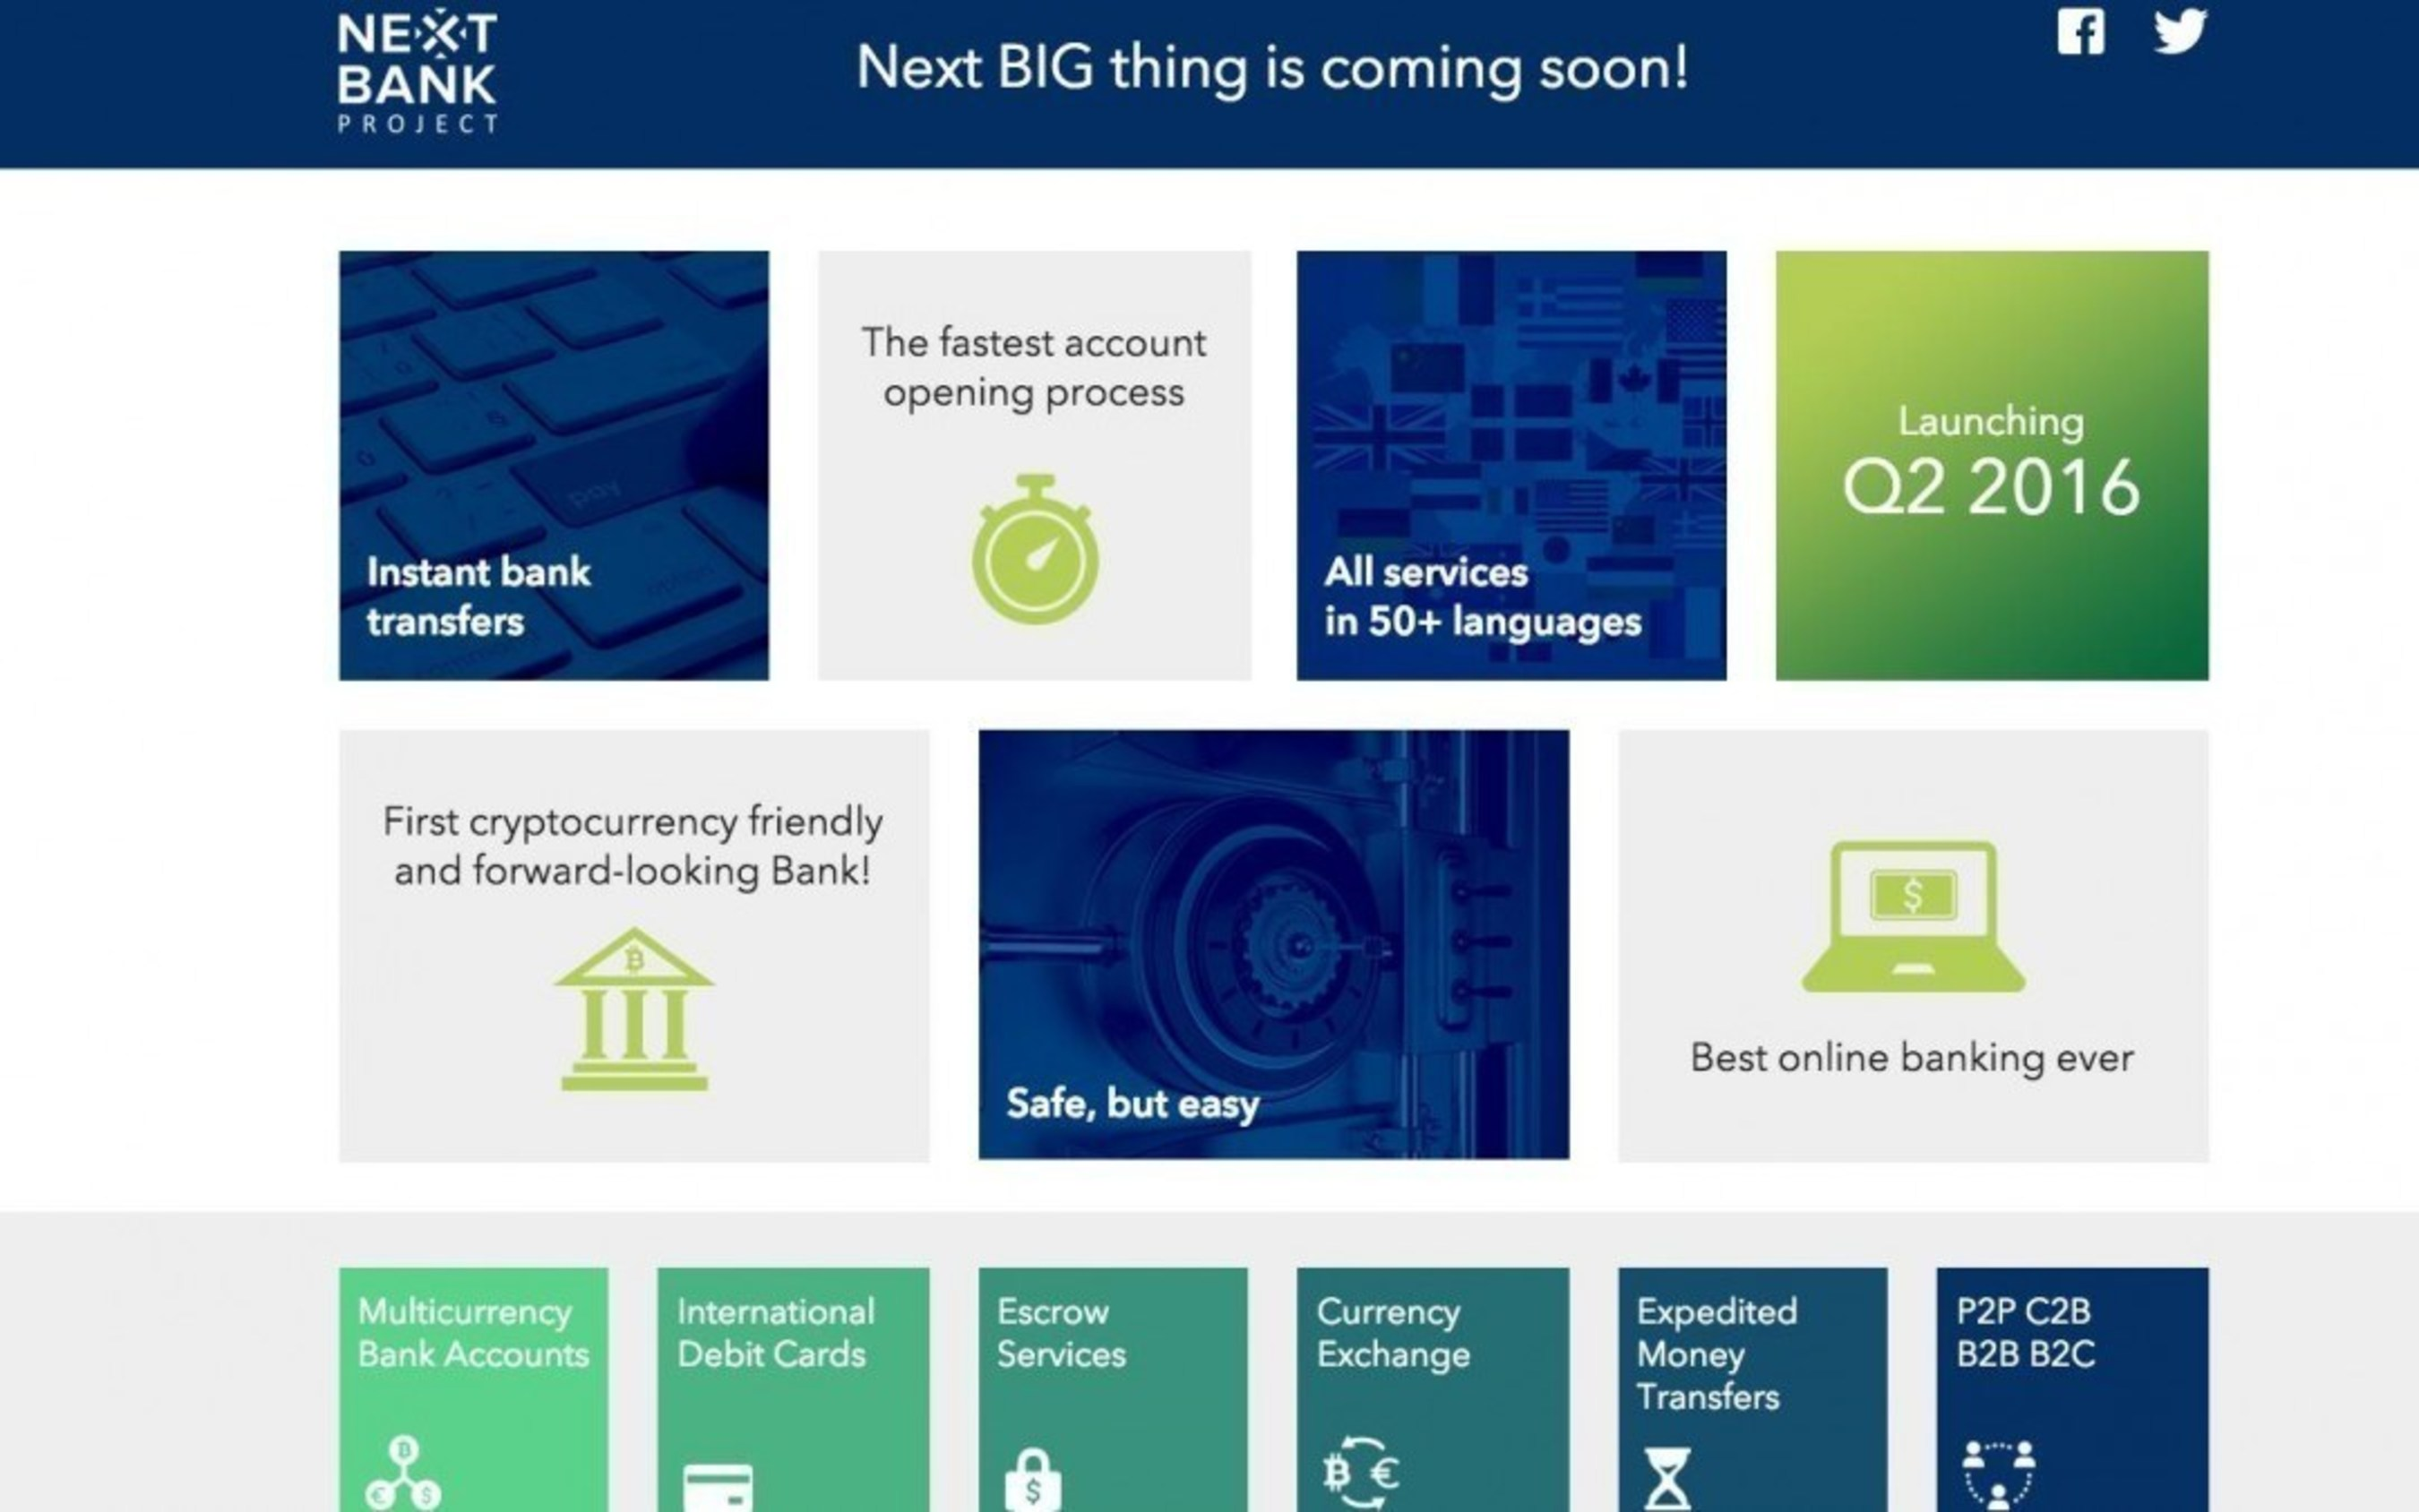 World's First Bitcoin Friendly Bank NextBank Announces Upcoming Launch Establishes 'NB Formation Company'